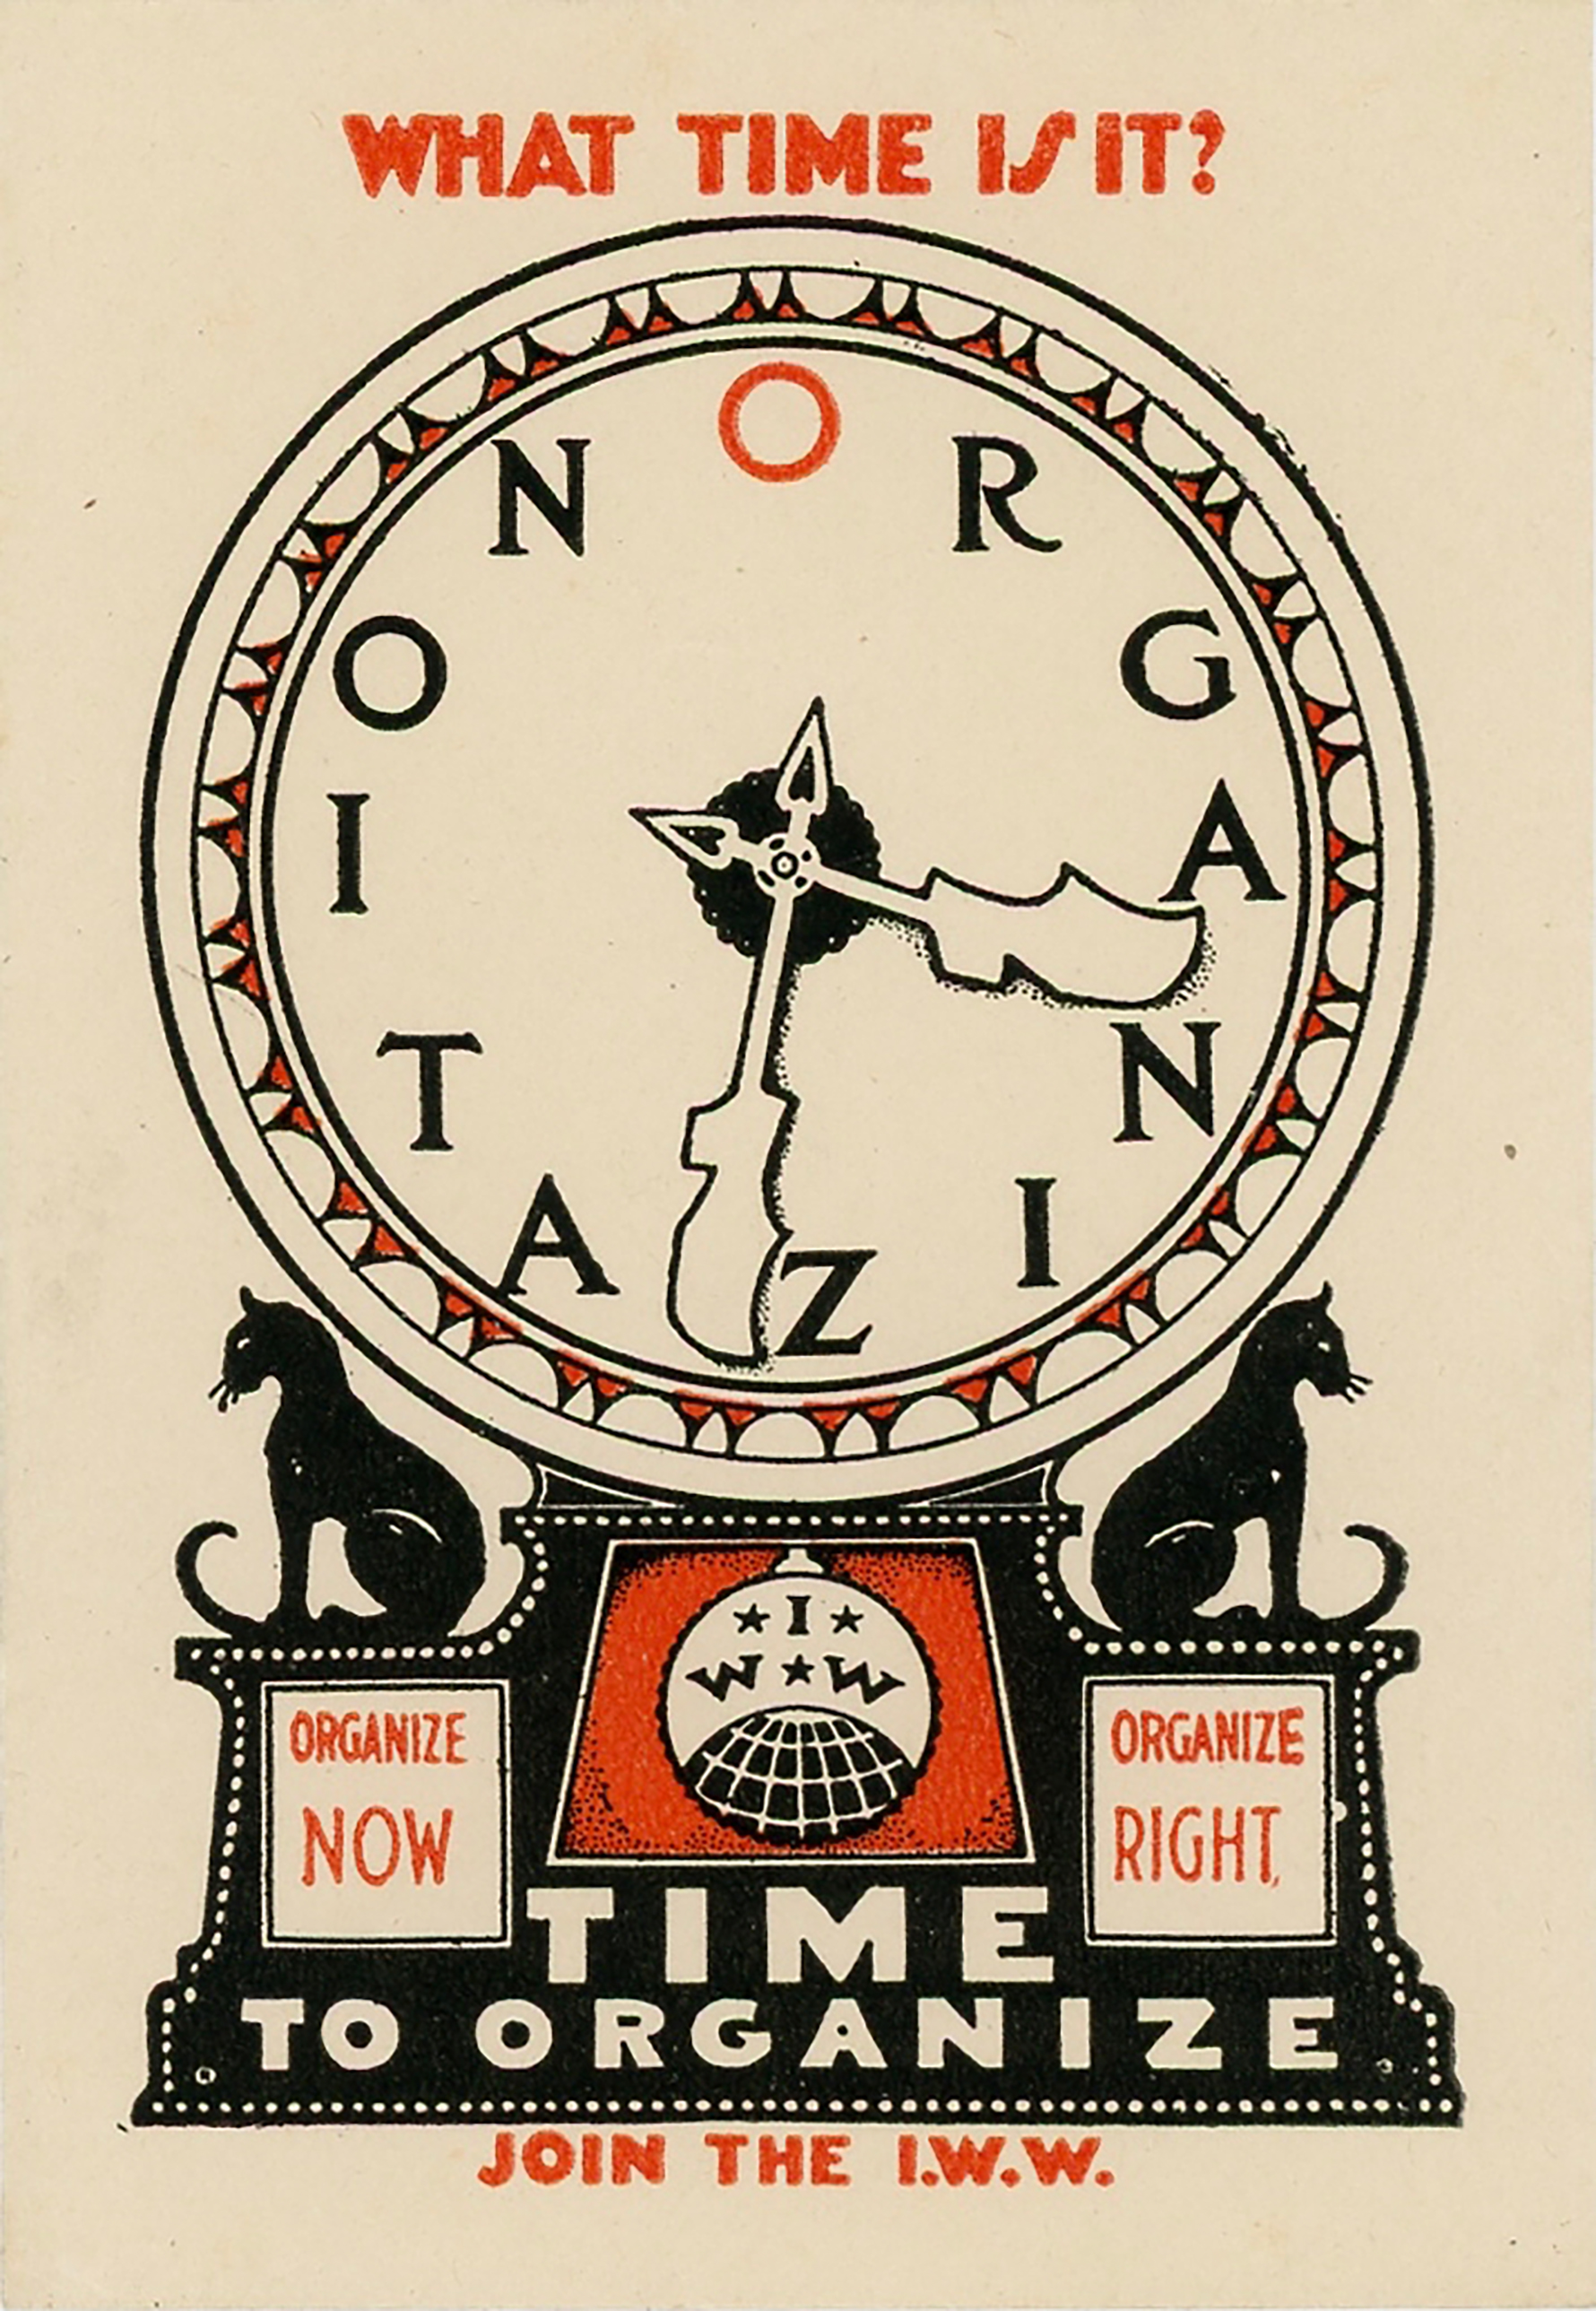 """Ralph Chaplin's stickerette of a clock; the face reads ORGANIZE, and the base reads """"what time is it? time to organize!"""""""